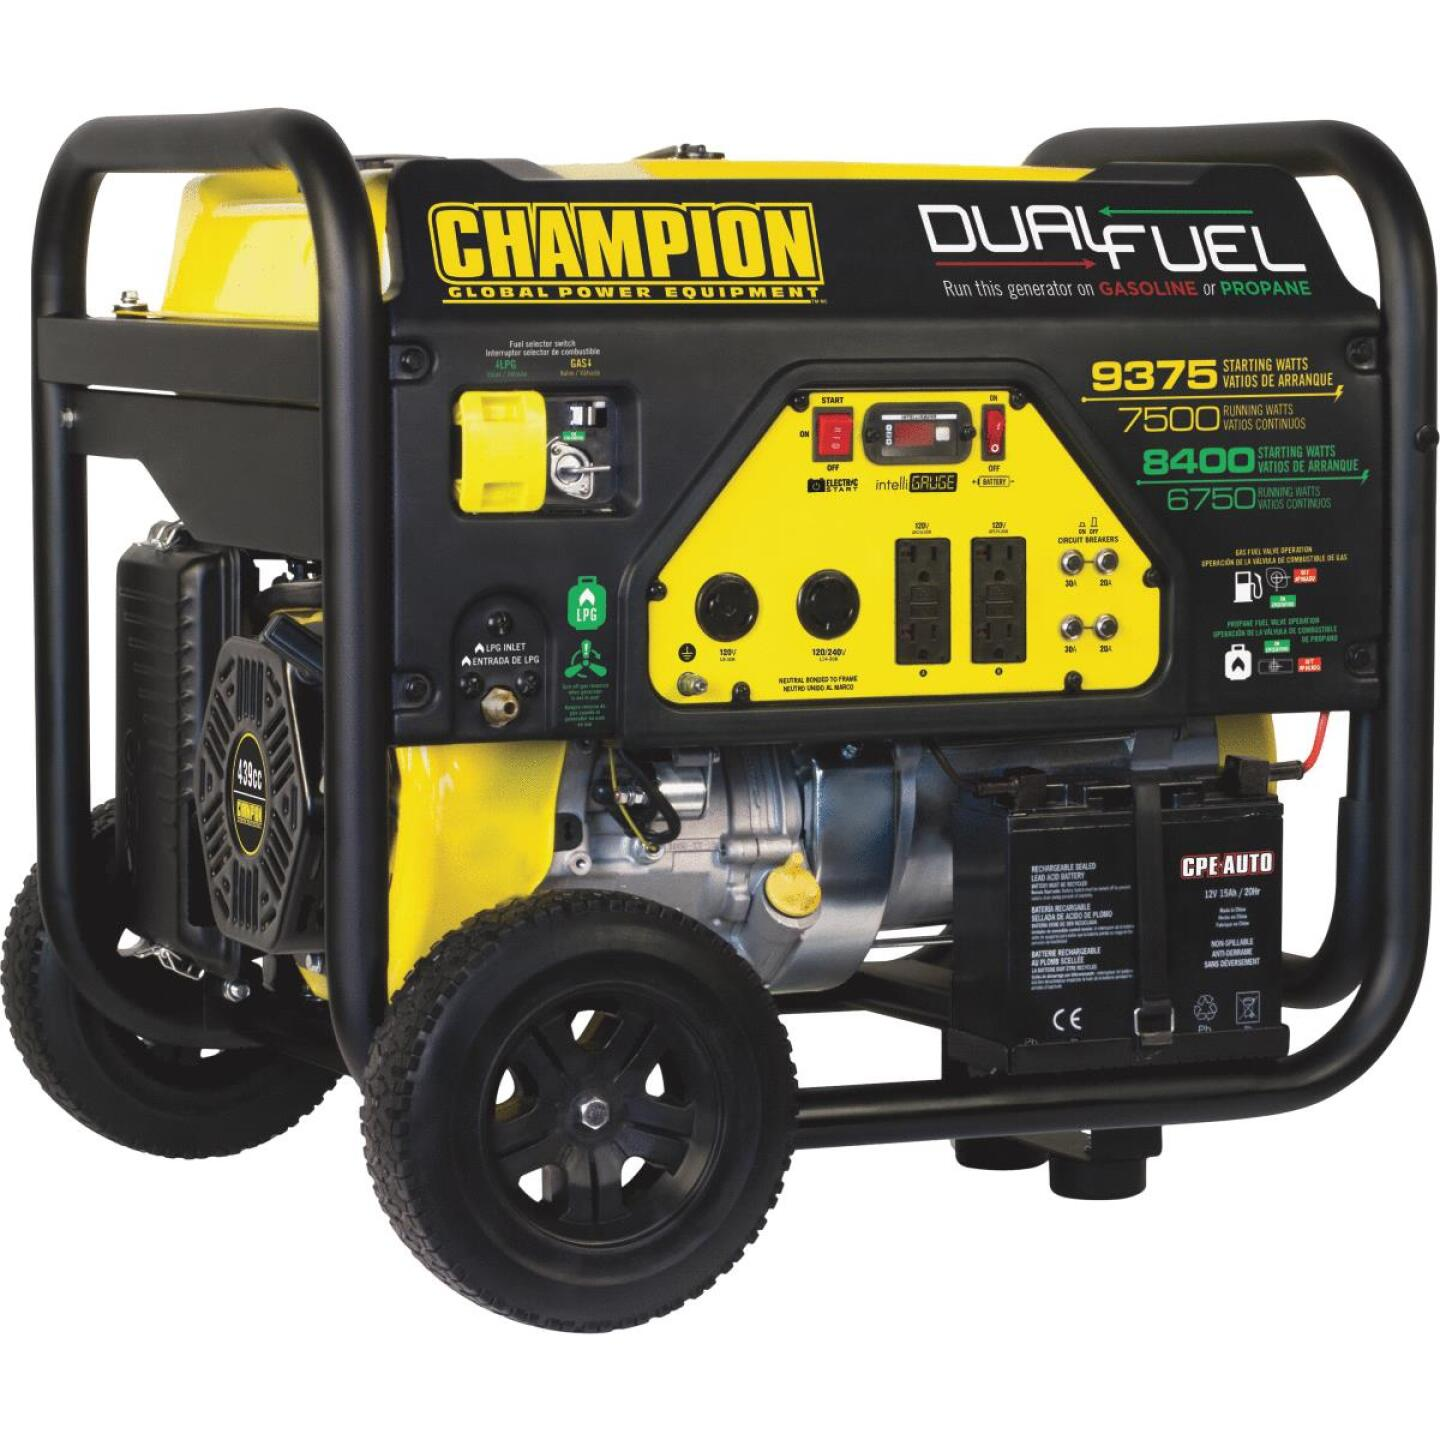 Champion 7500W Dual Fuel Portable Generator with Electric Start (California Compliant) Image 1